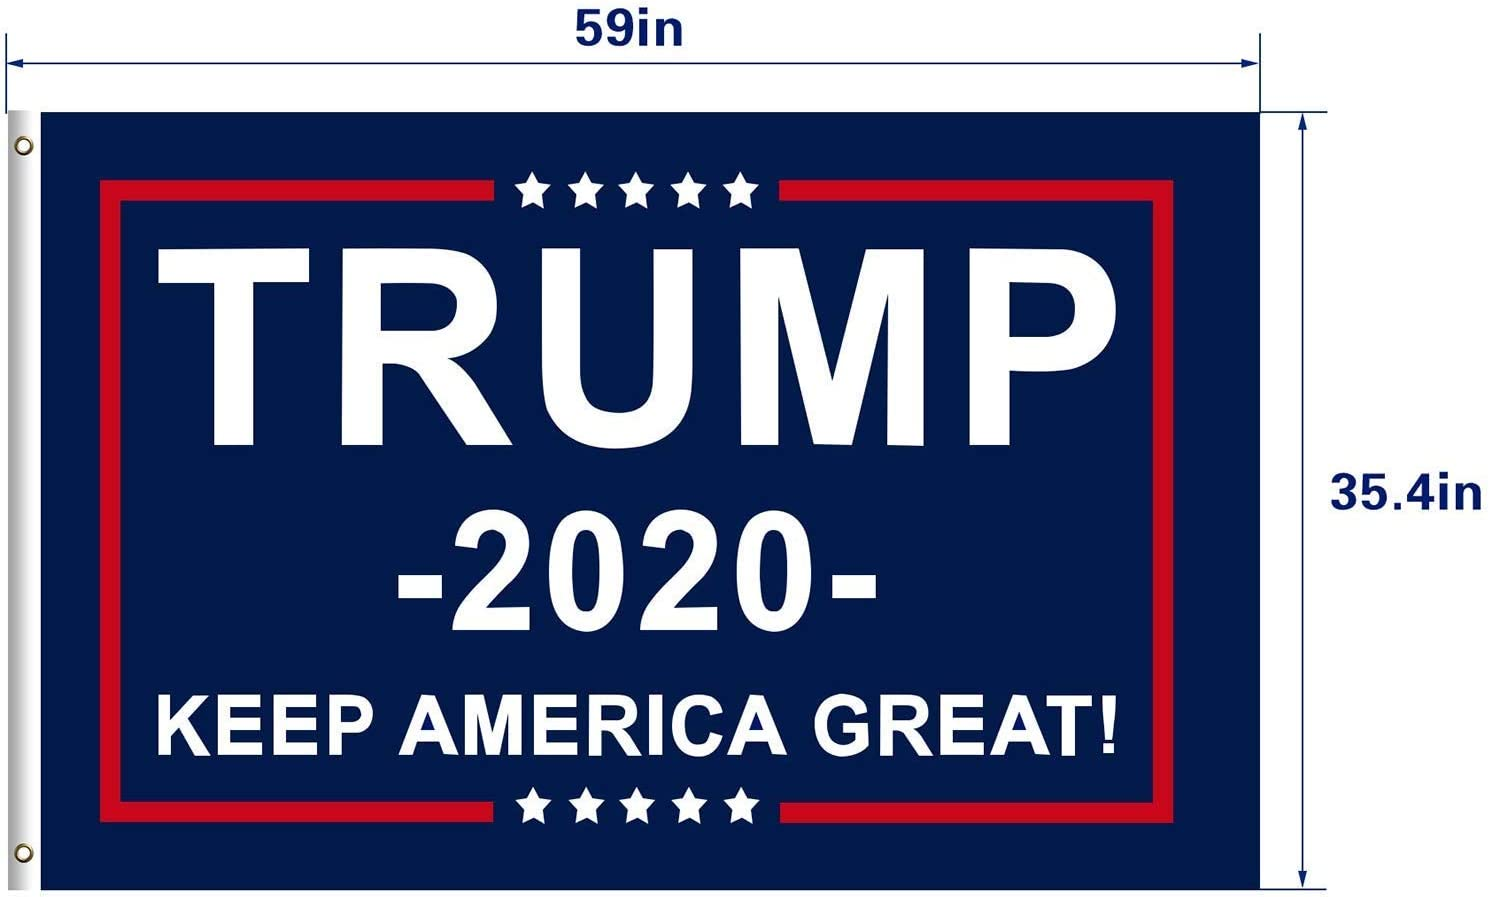 TRUMP 2020 FULL SIZE FLAG 3X5 FEET BRASS GROMMETS MAGA USA KEEP AMERICA GREAT US